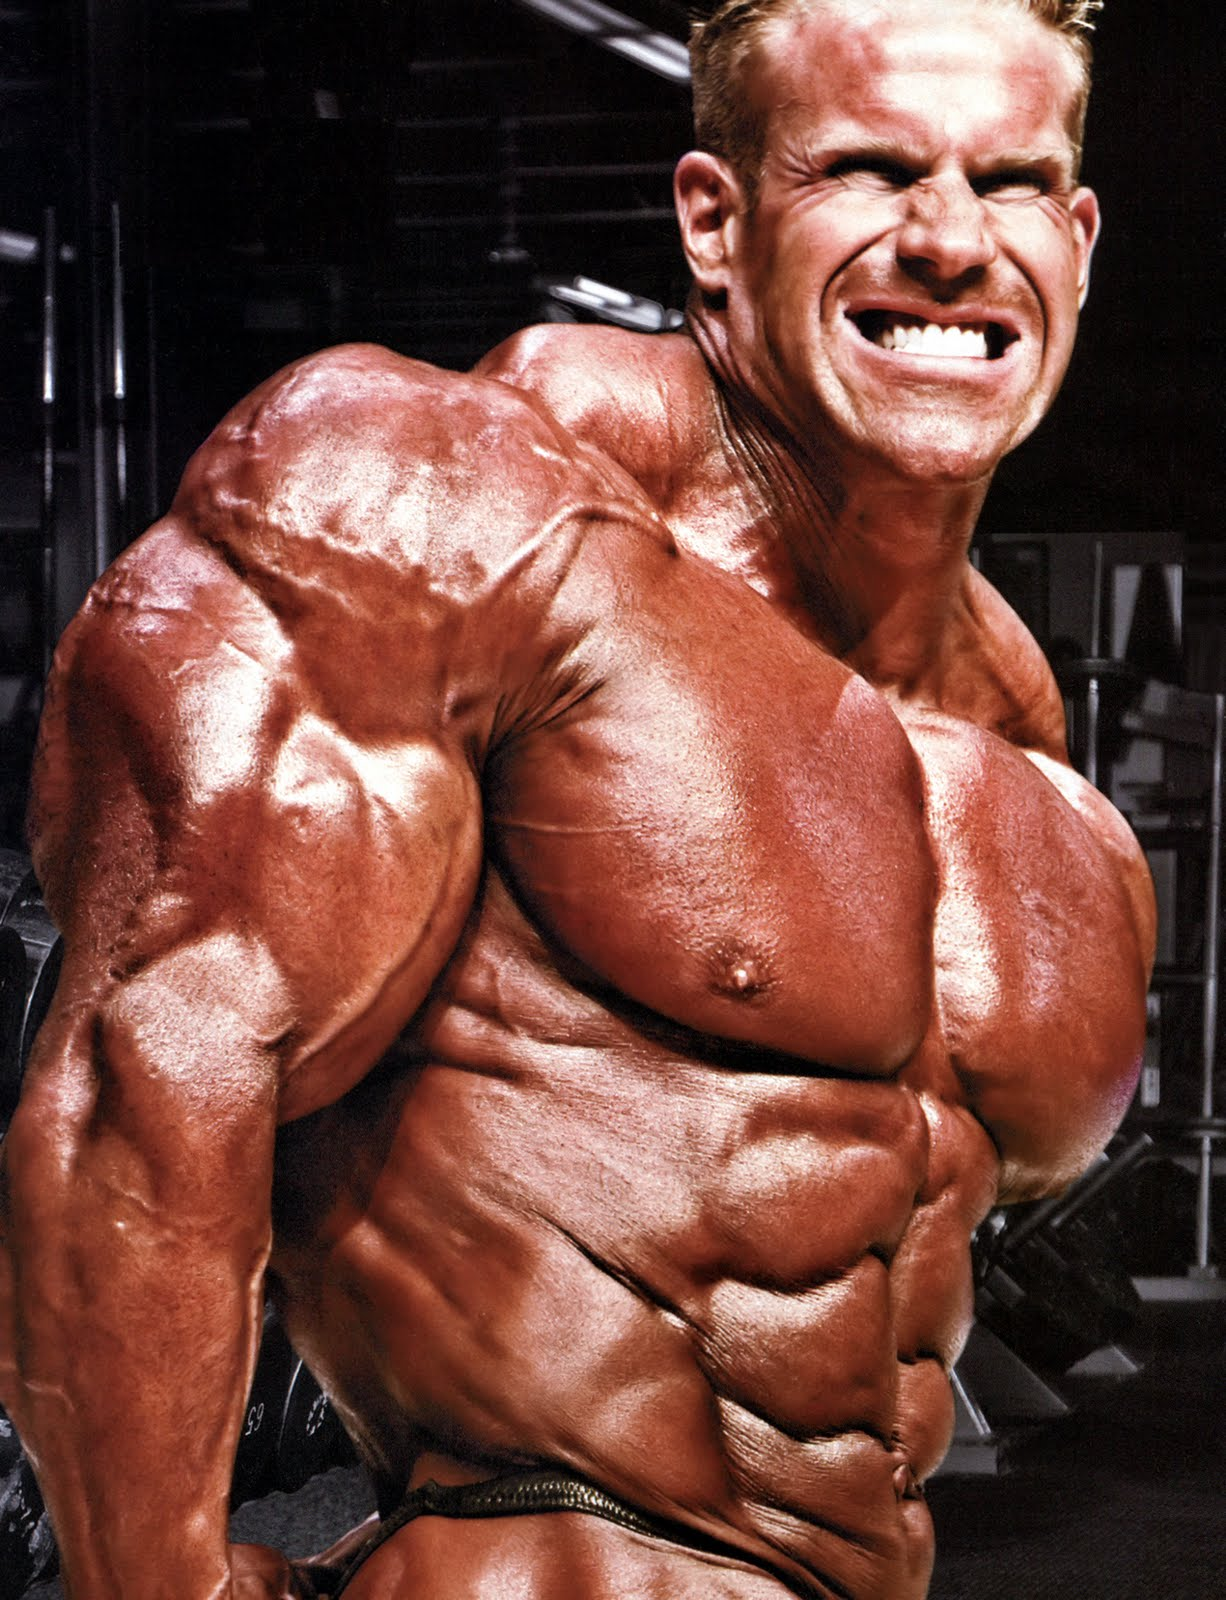 trololo blogg: Wallpaper Jay Cutler Bodybuilder